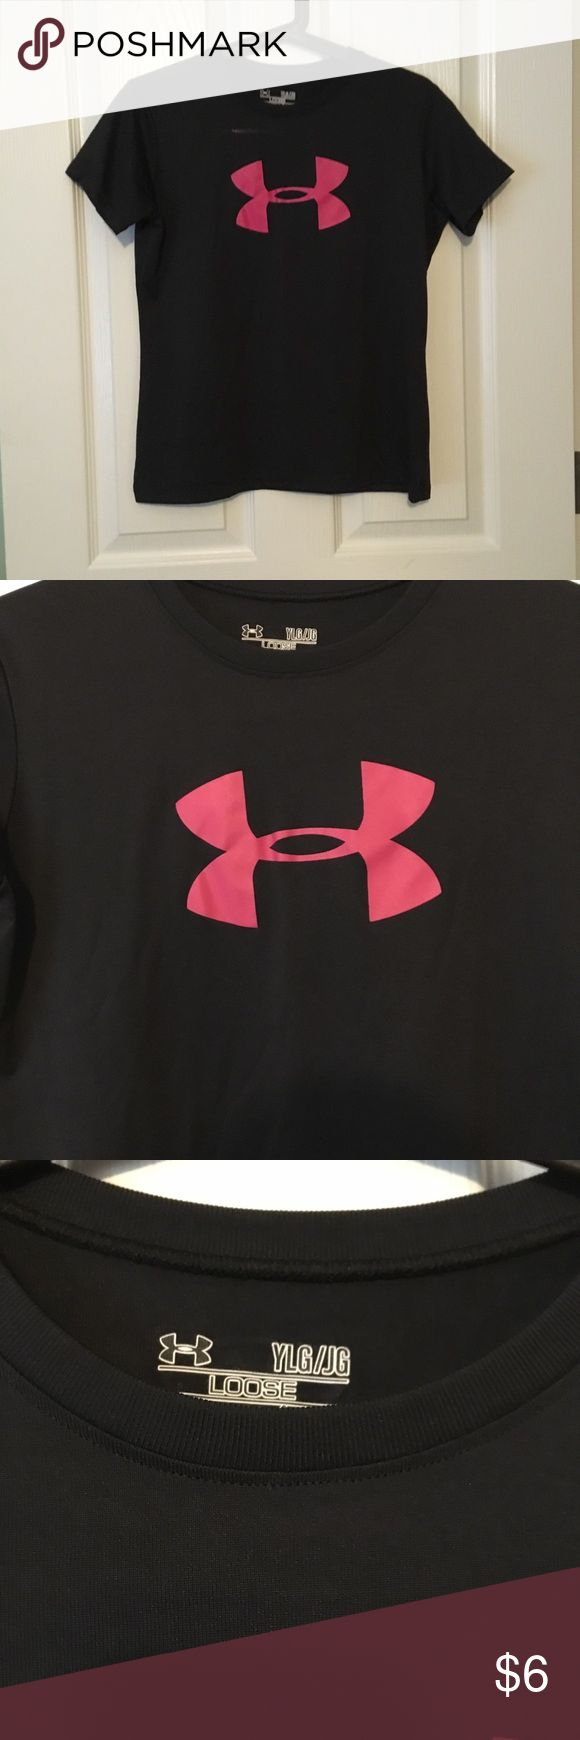 Under Armour T Shirt Black t shirt with pink logo. Under Armour Shirts & Tops Tees - Short Sleeve